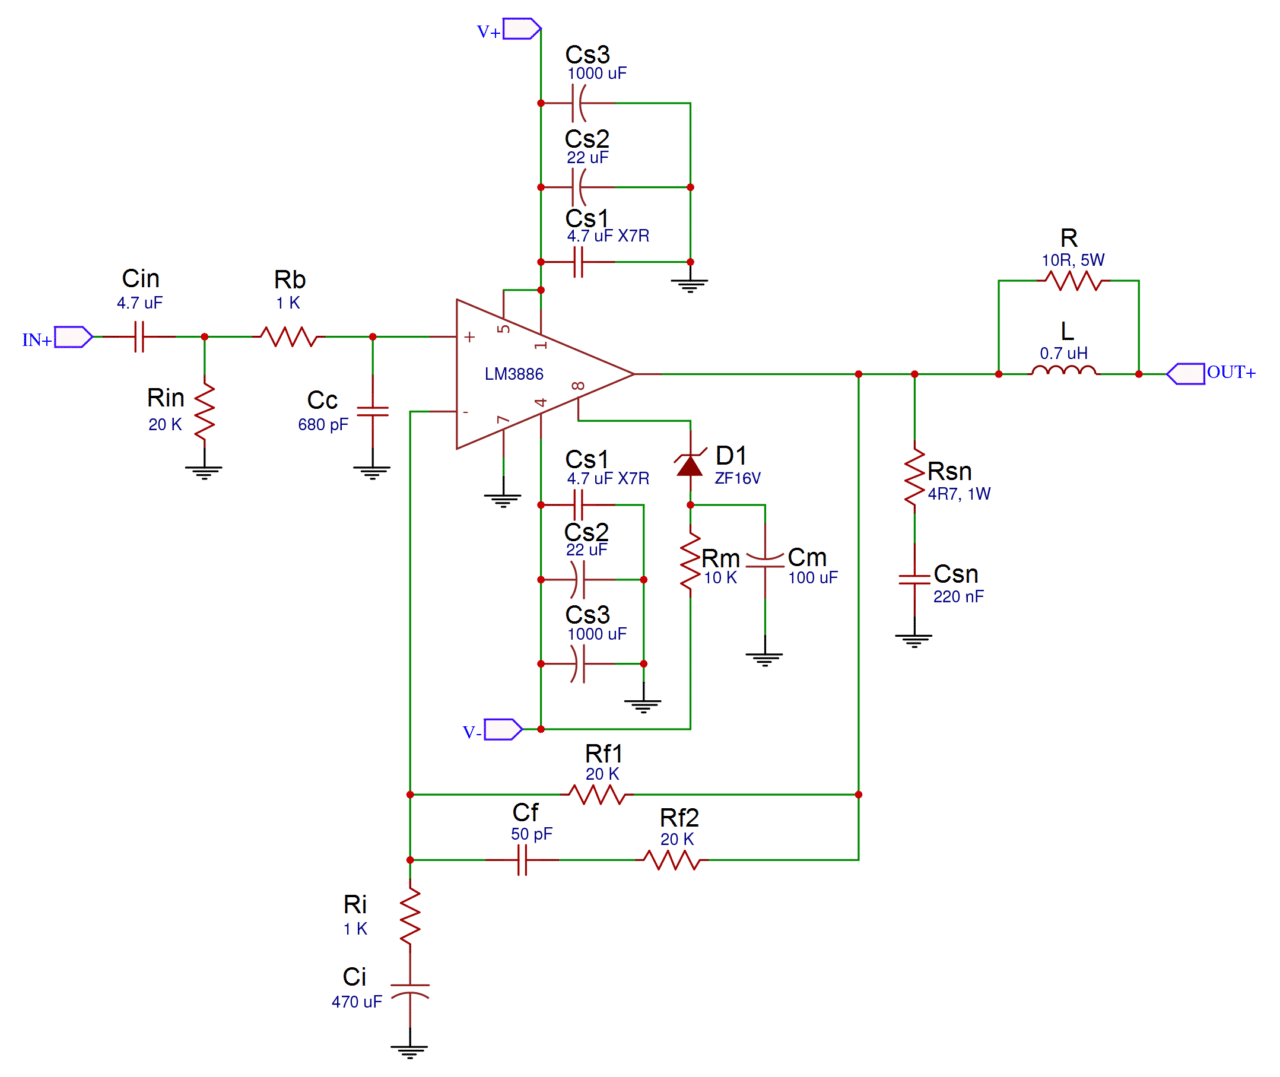 A Complete Guide To Design And Build Hi Fi Lm3886 Amplifier Pin On Dc Power Source Schematic Symbol Ill Be Using The Below Its Basically Same As One In Datasheet But With Optional Stability Components Included